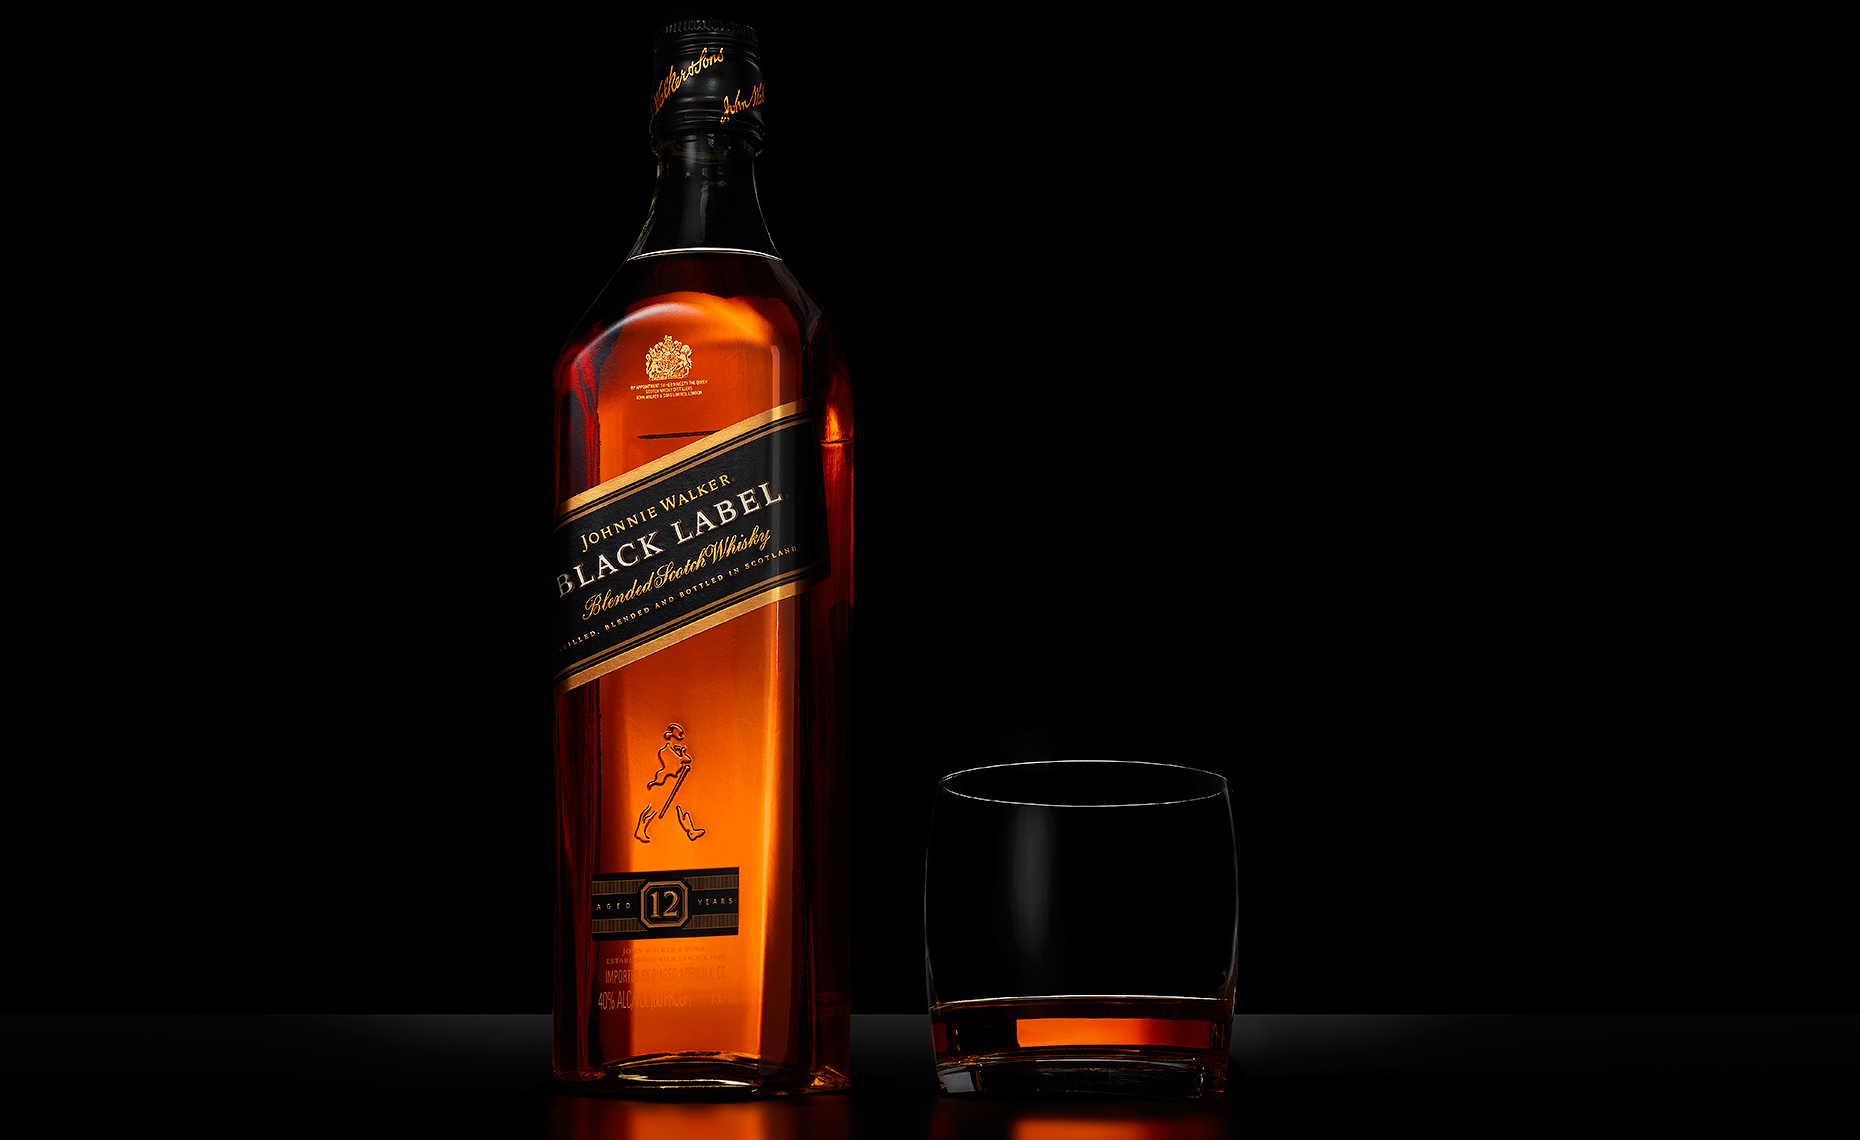 beverage photo of Johnnie-walker-black-label by Brian Kaldorf